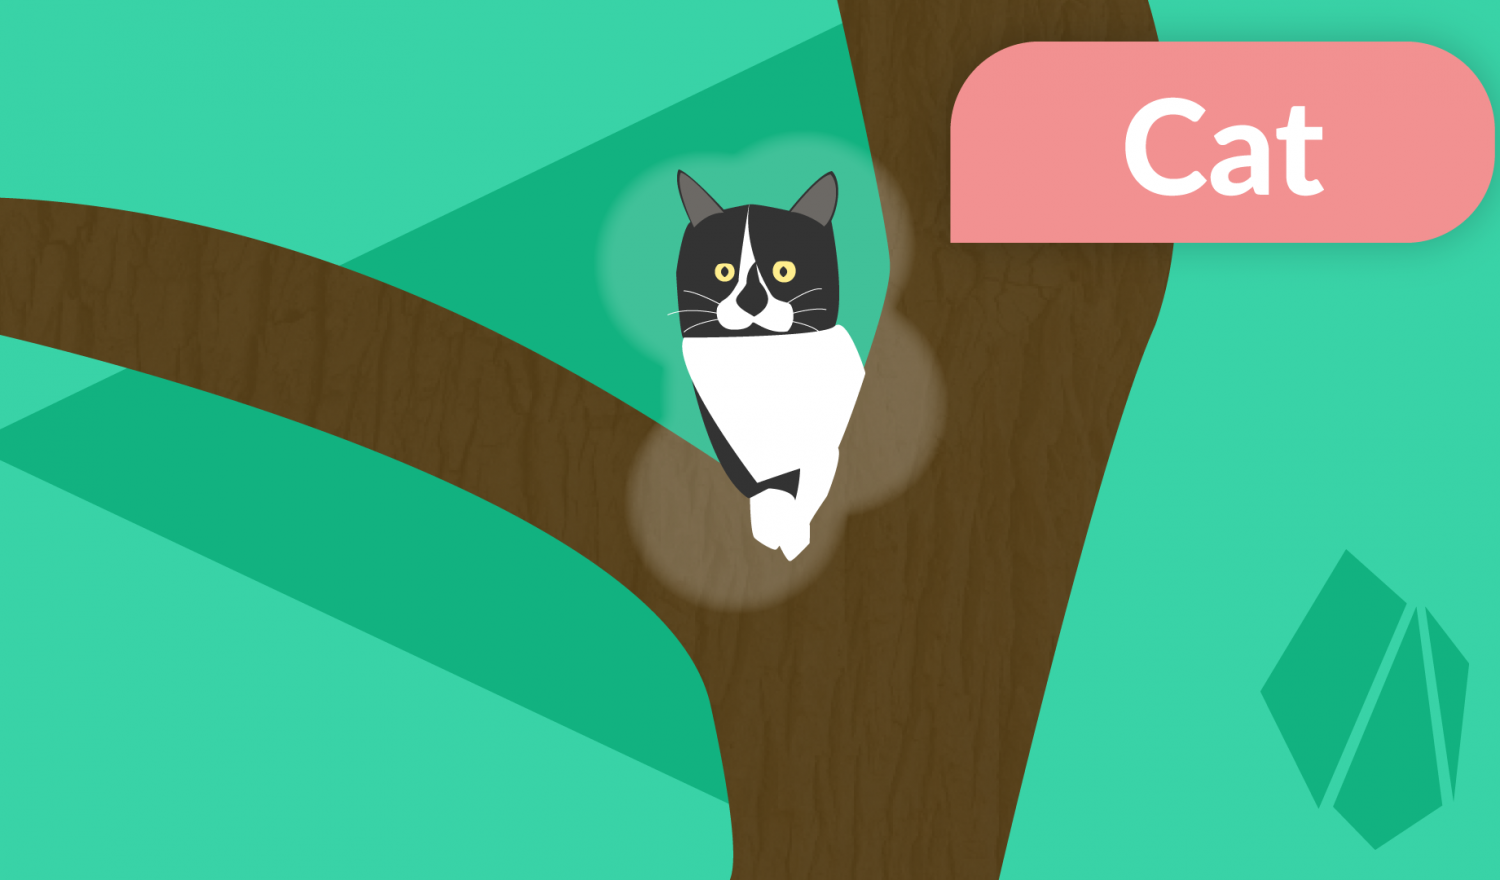 A cat sitting in a tree with a stylized image captioning